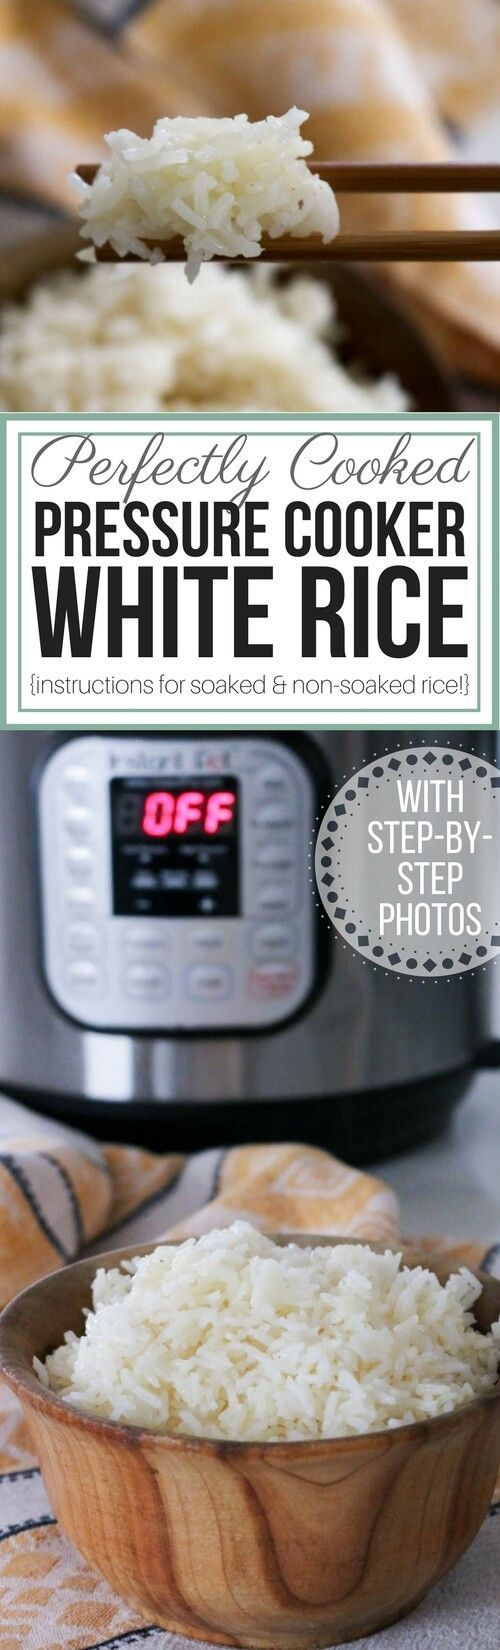 How to Cook Perfect Rice in the Electric Pressure Cooker (Instant Pot) -Easily prepare perfect rice for maximum absorption and nutrition in your electric pressure cooker. Instructions for both soaked rice and regular rice. #pressurecooker #instantpot #healthyrice via @preparenourish